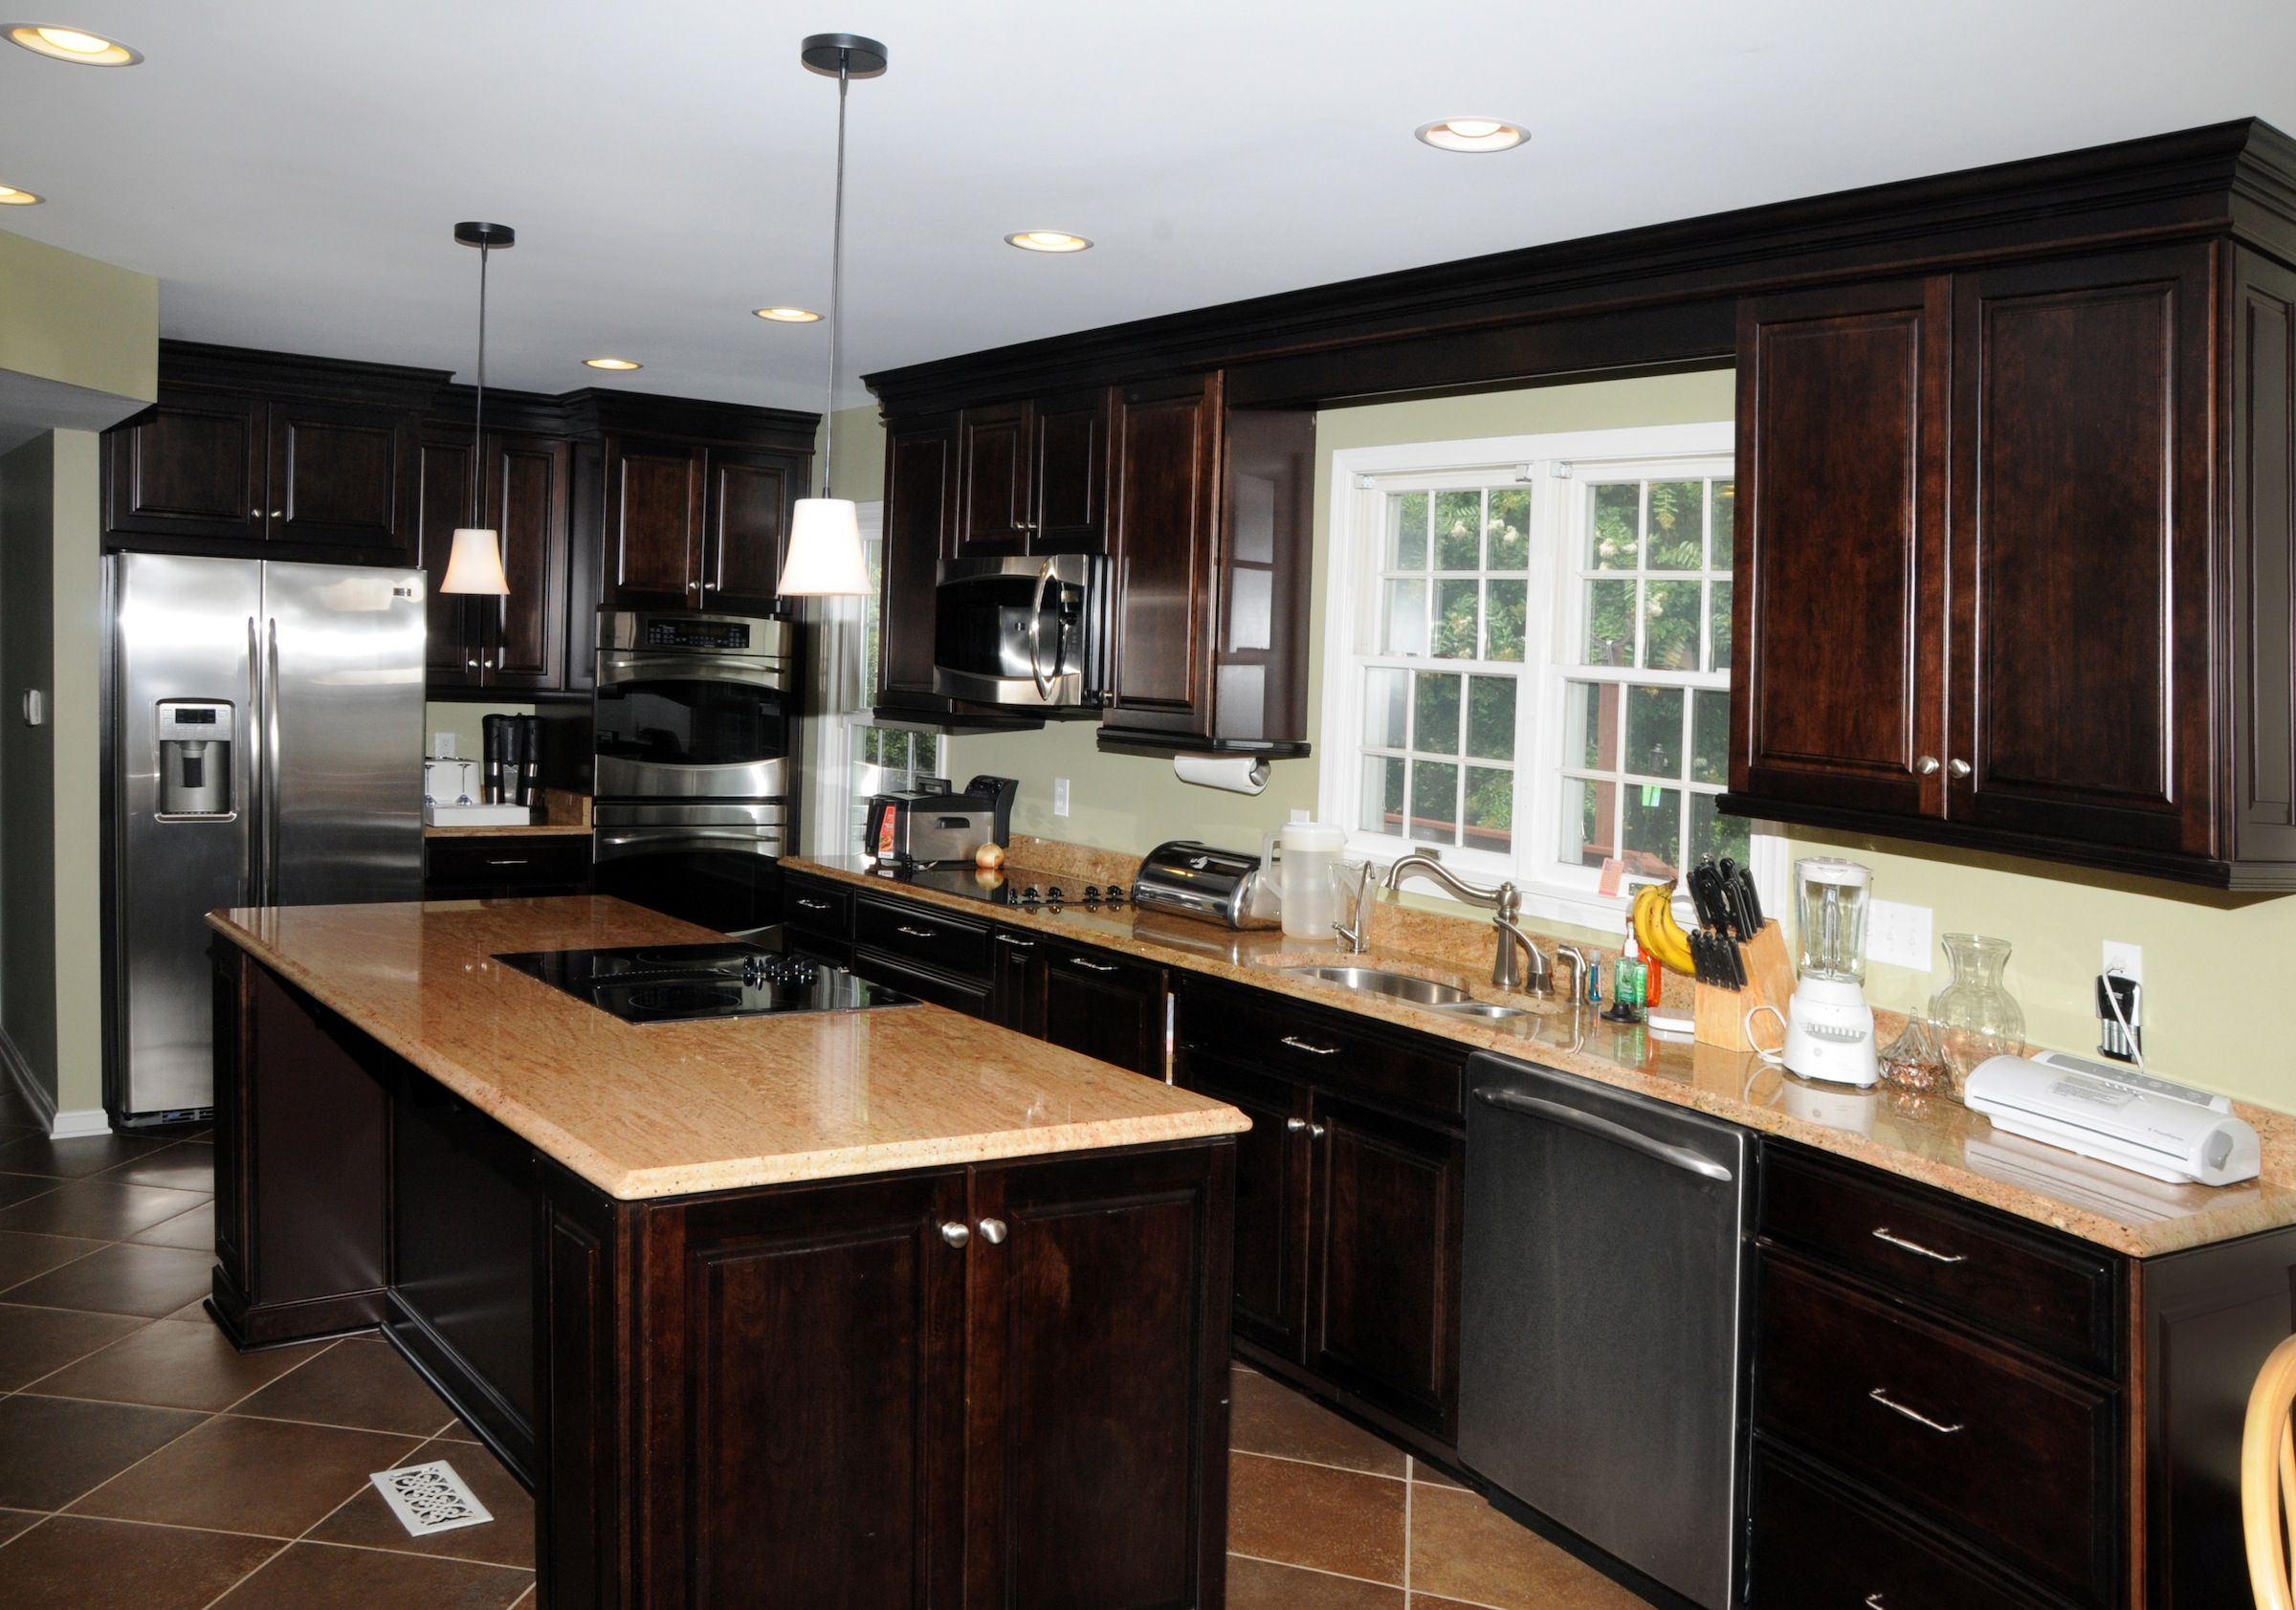 Kitchen Design Baltimore Kitchen Addition In Owings Mills Md  Baltimore County  Design